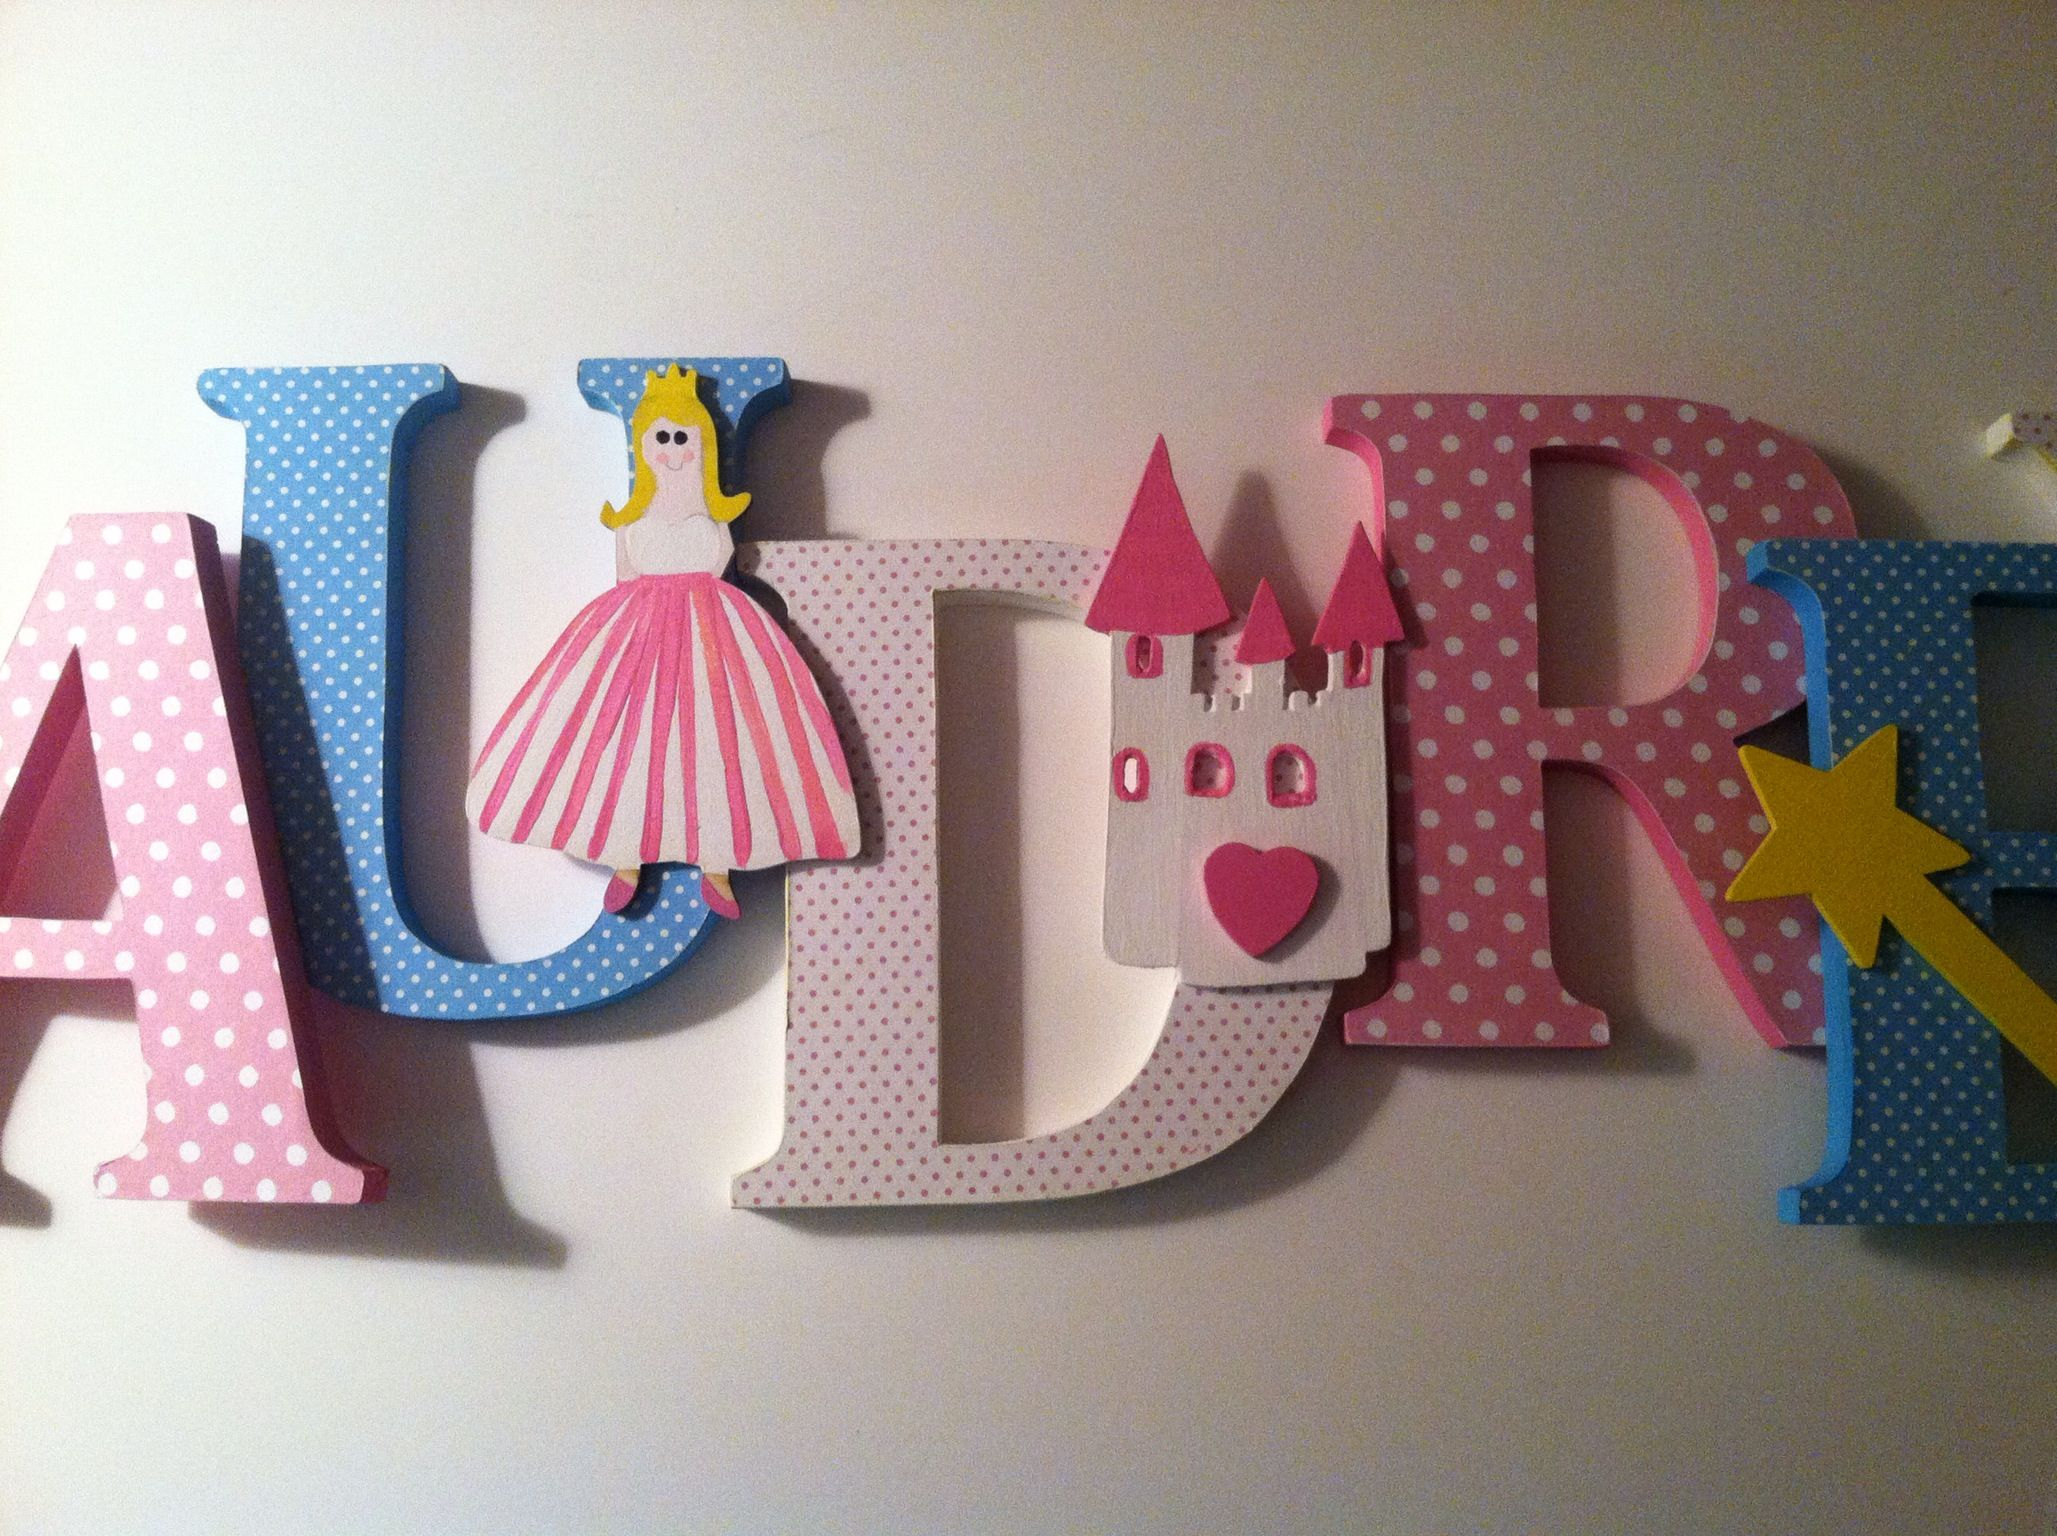 Princess Themed Wooden Letters Nursery Decor From Www Summerolivias Etsy Com Wooden Letters For Nursery Wooden